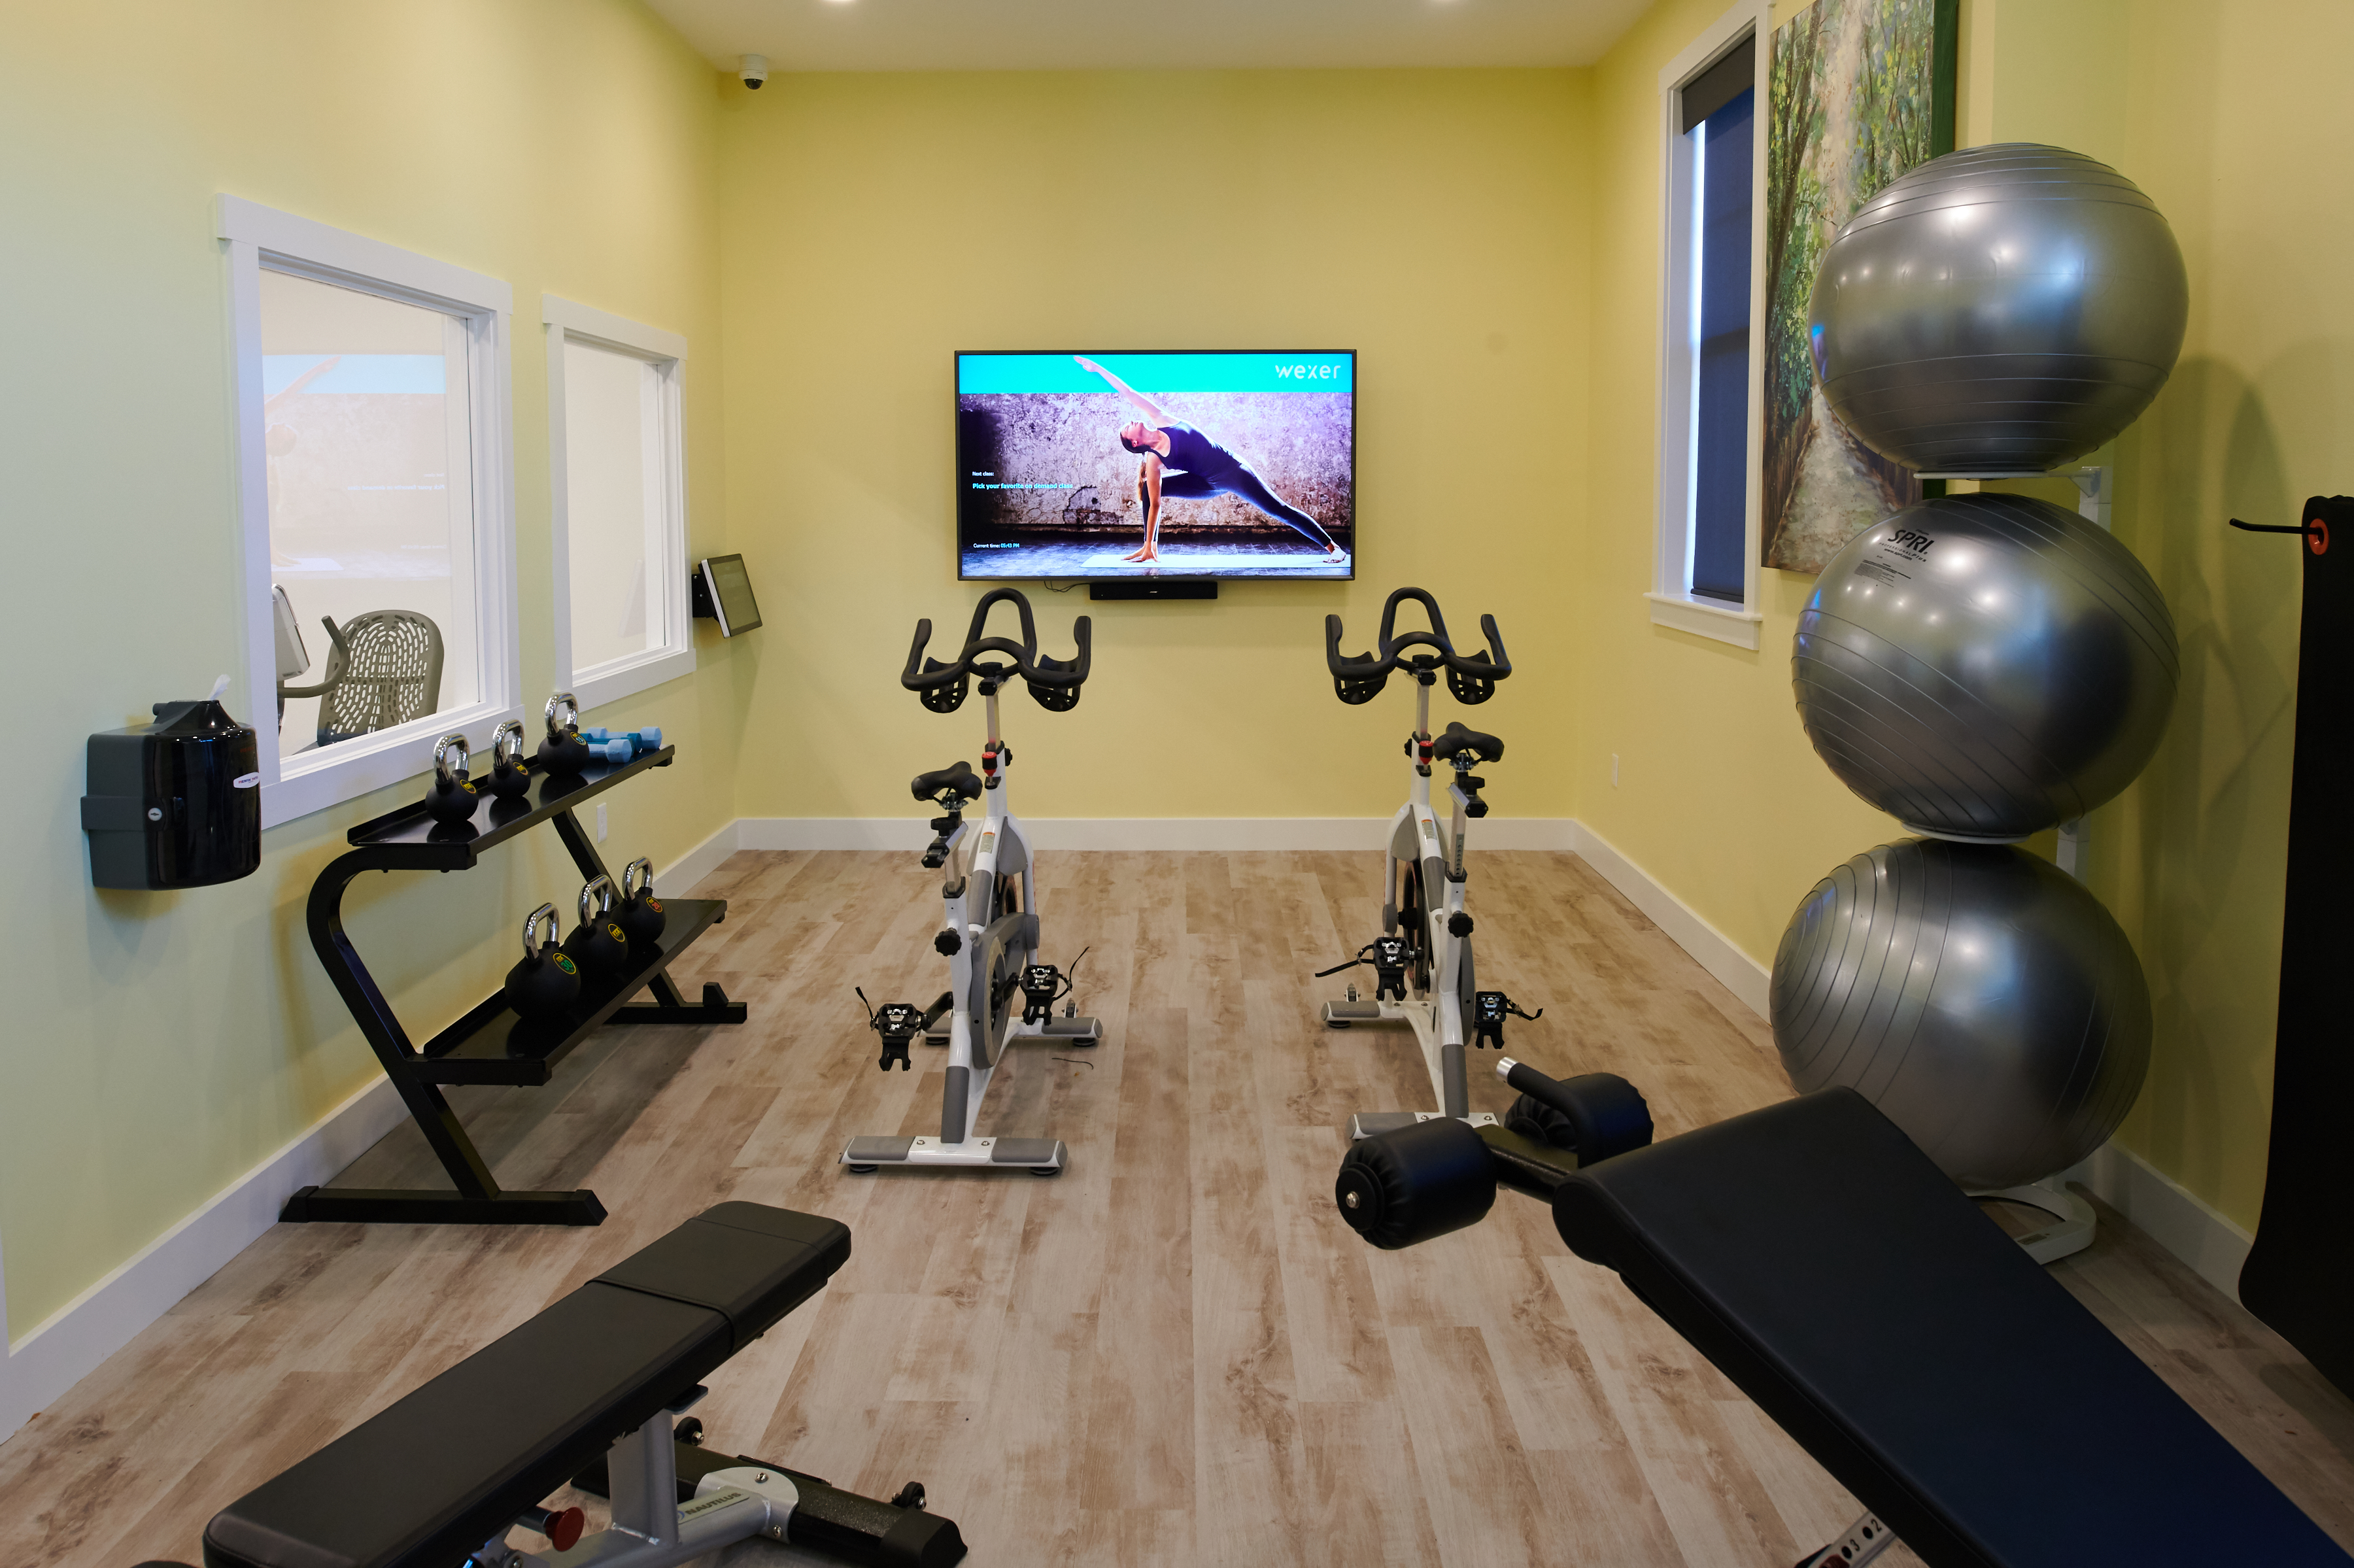 Workout classroom at Verde with kettlebells, benches, and two spin bikes.